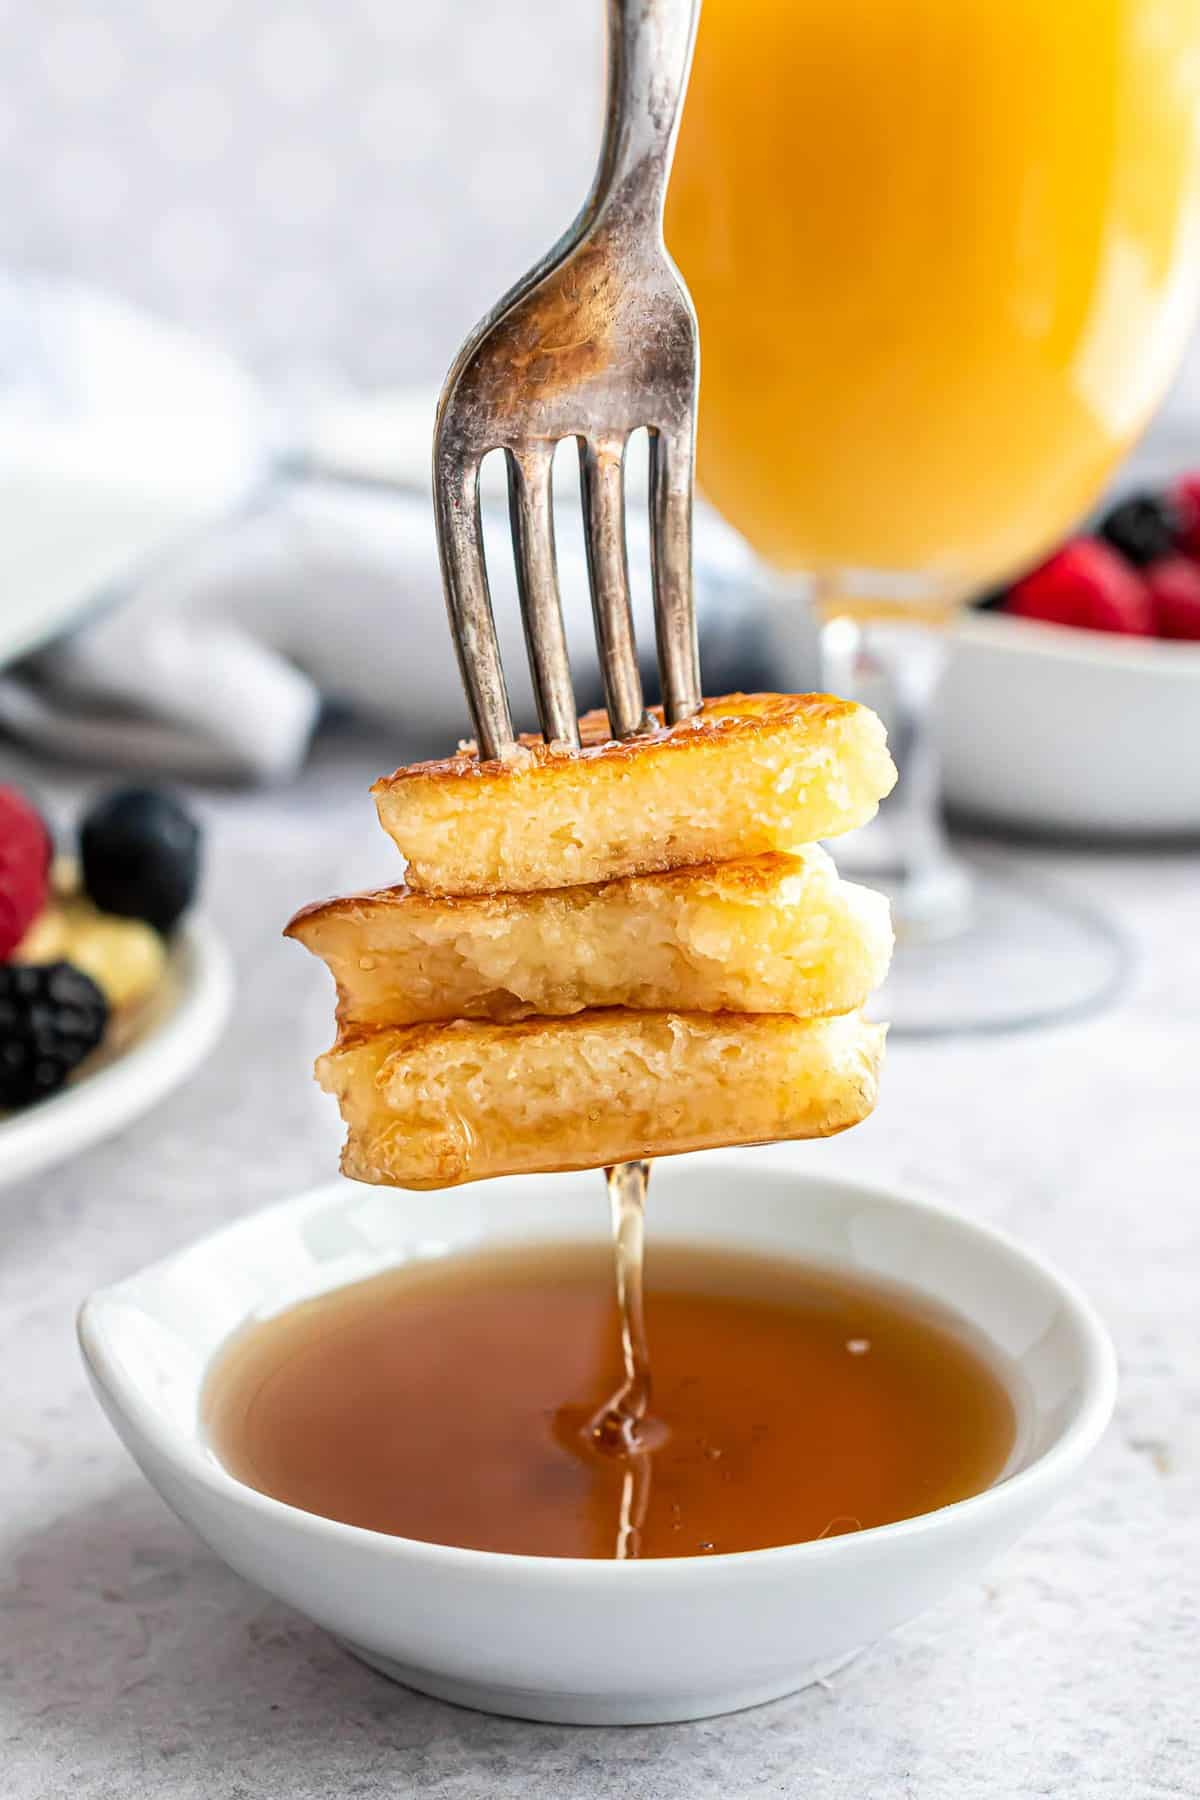 A fork dipping pancakes into a bowl of syrup.